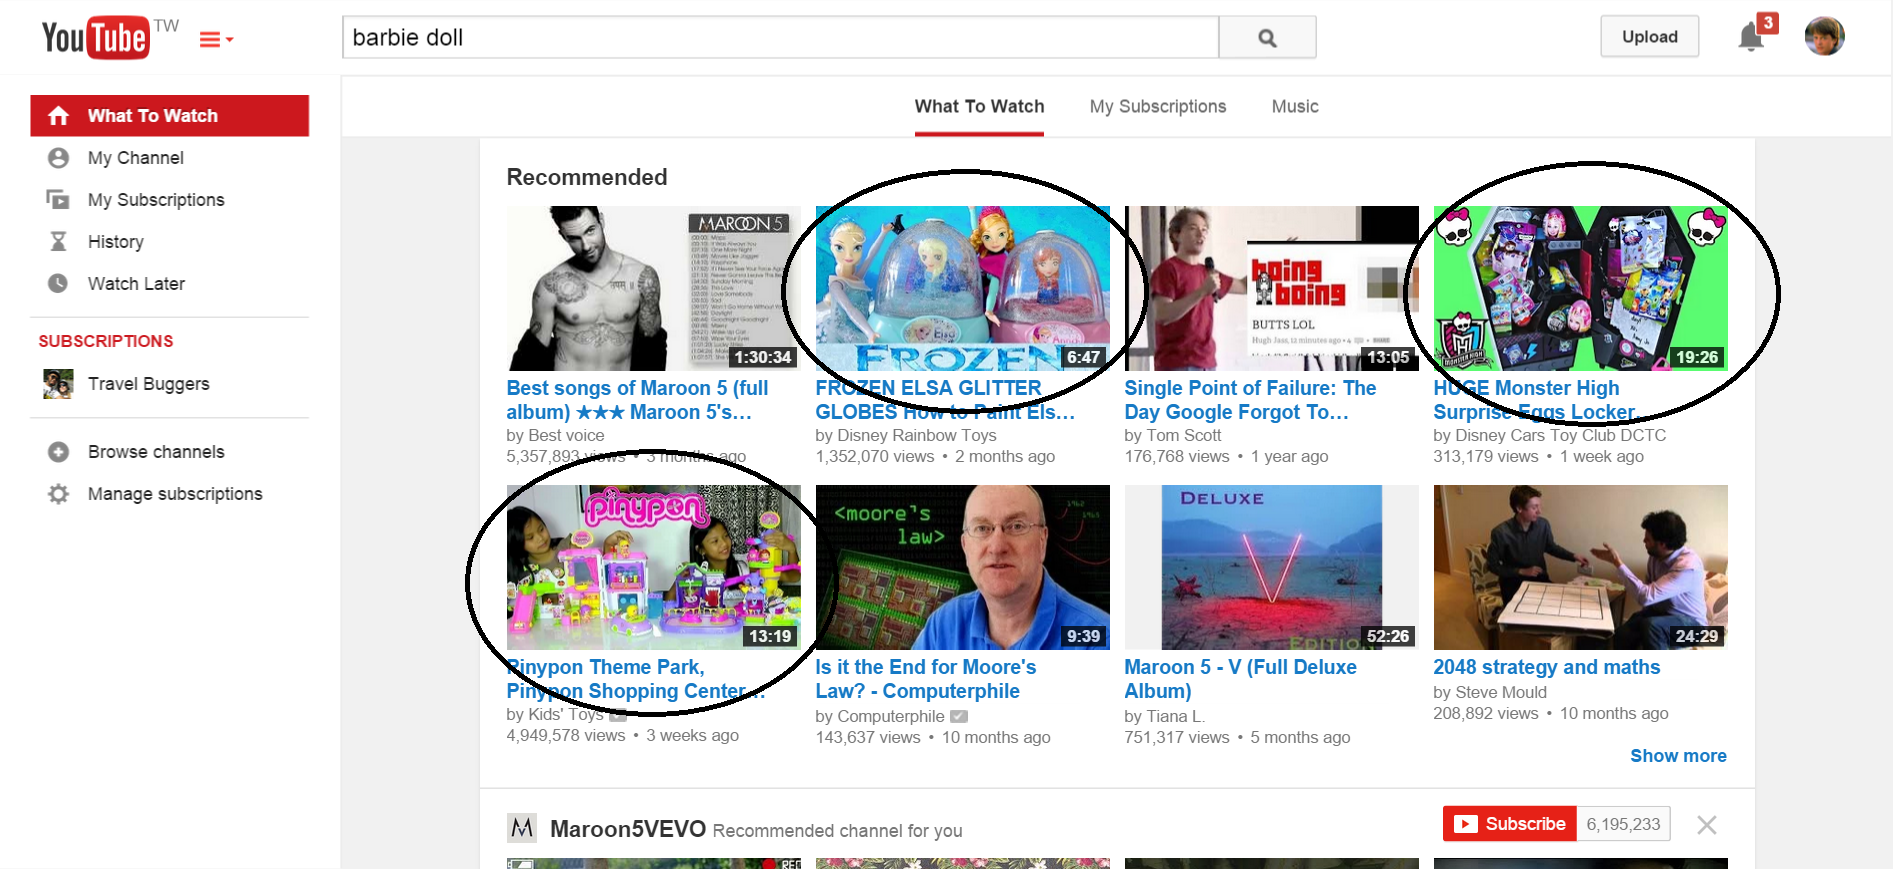 Recommended videos after watching full barbie video